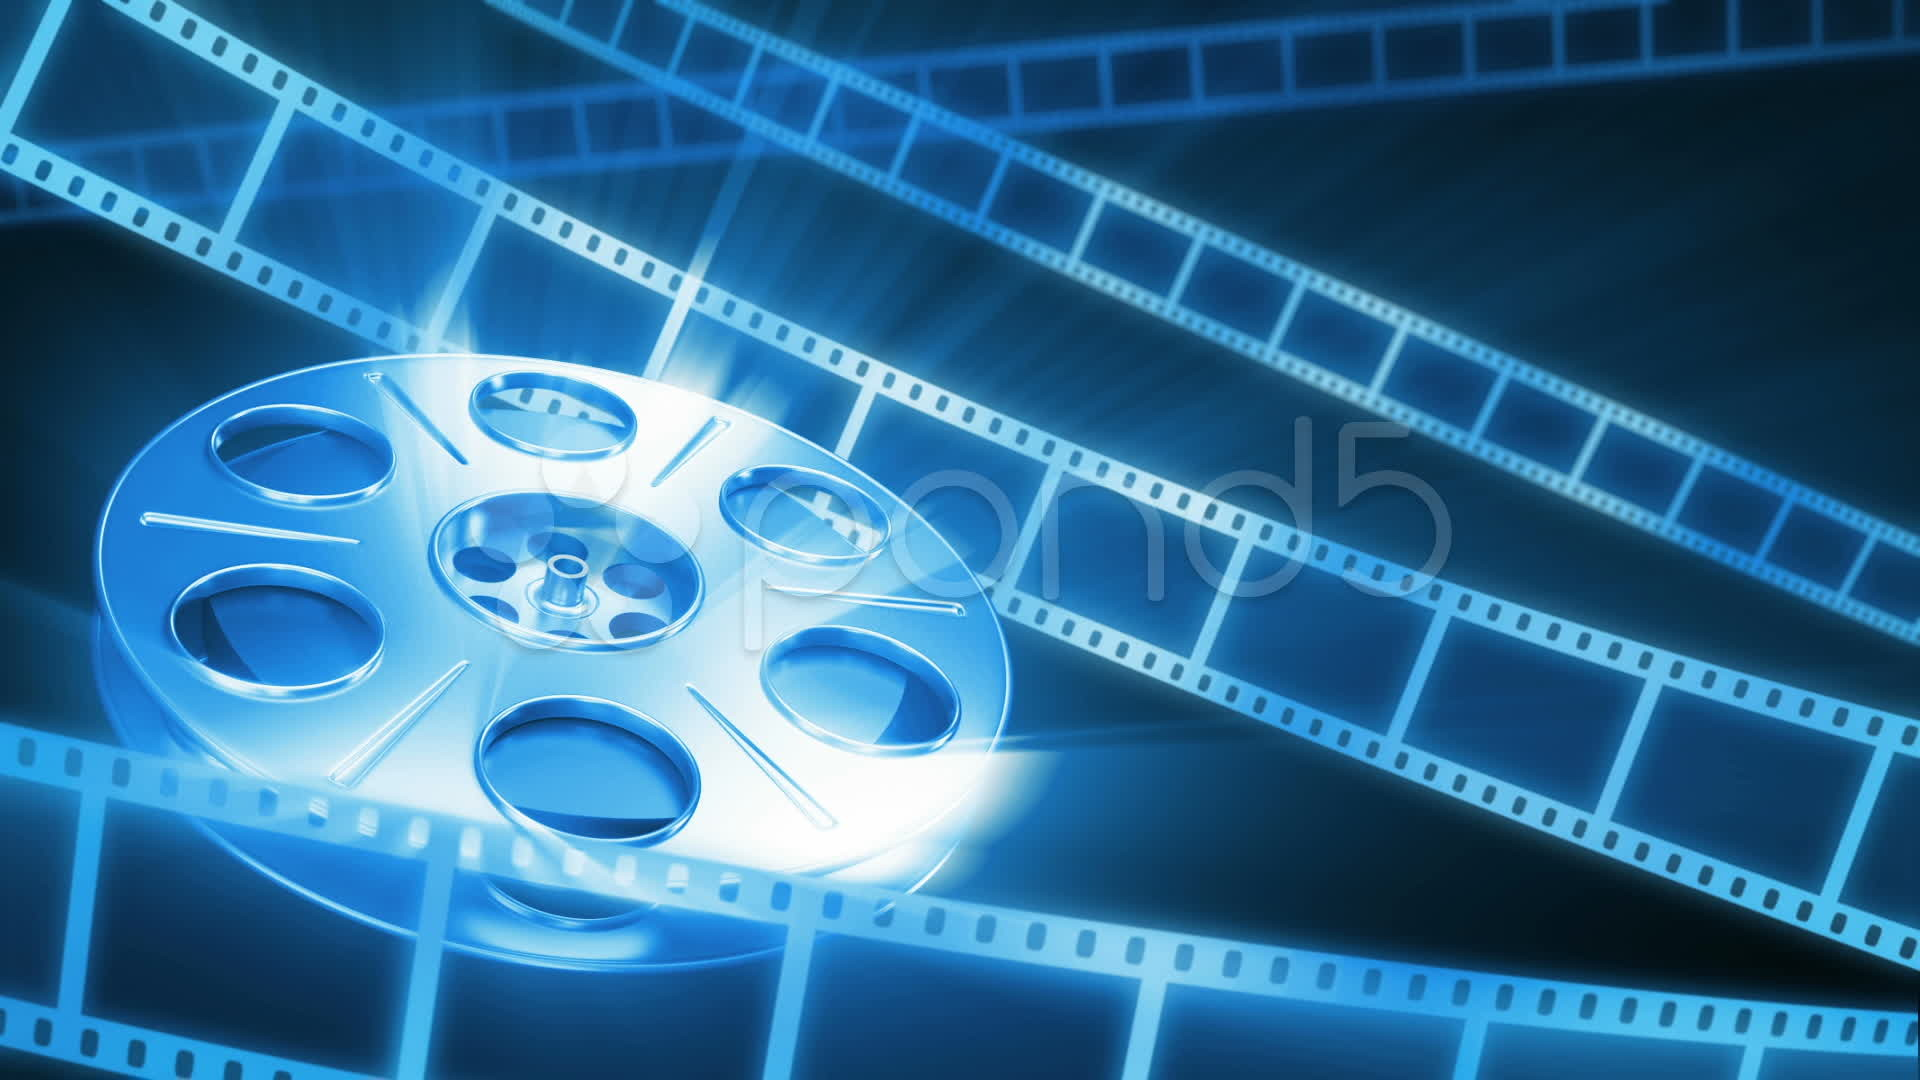 Theater Wallpaper Backgrounds 61 Images